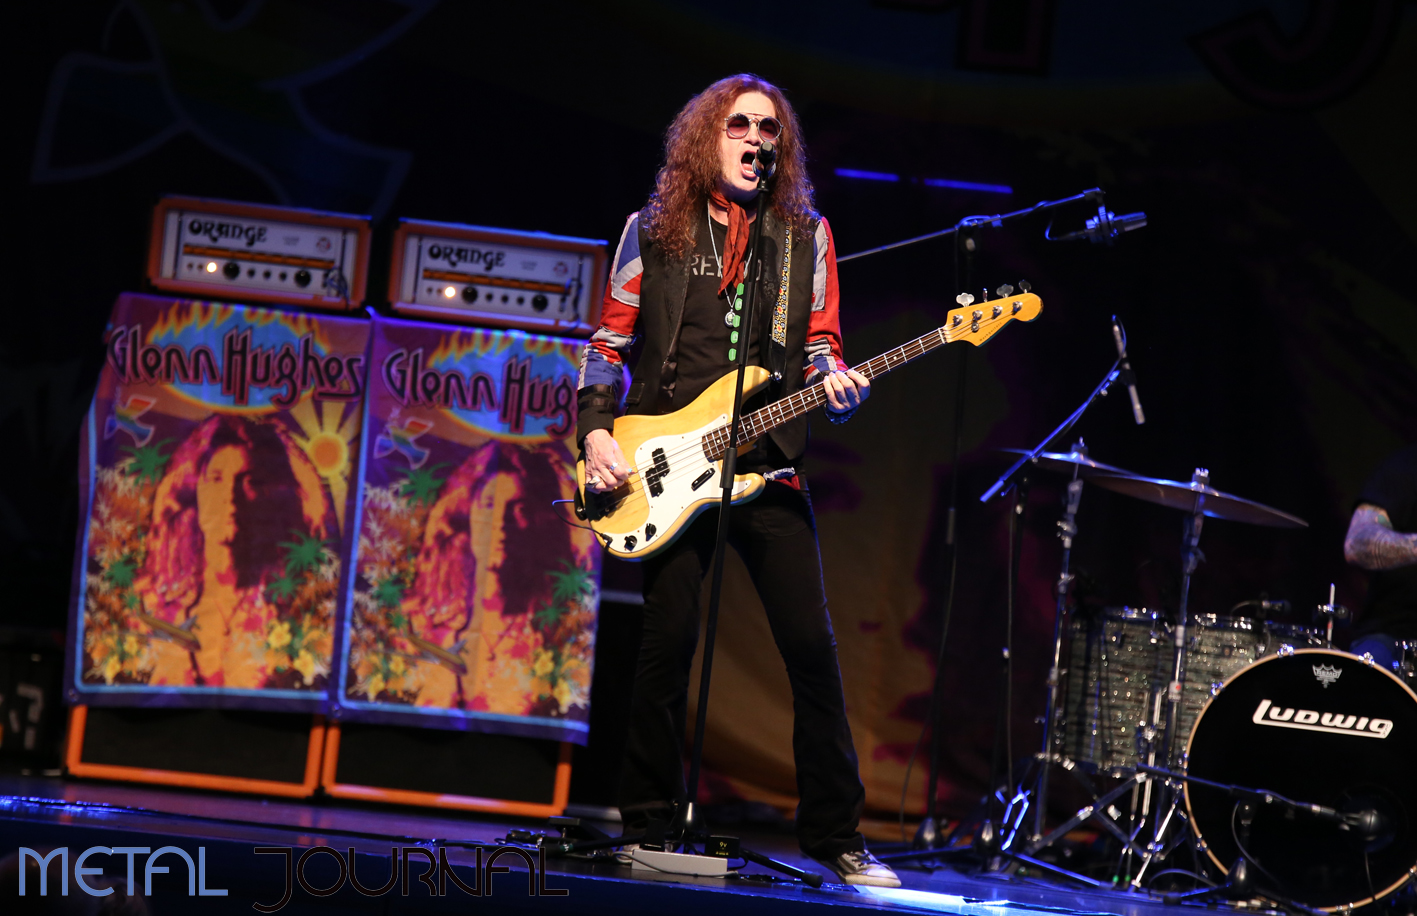 glenn hughes - metal journal pic 9